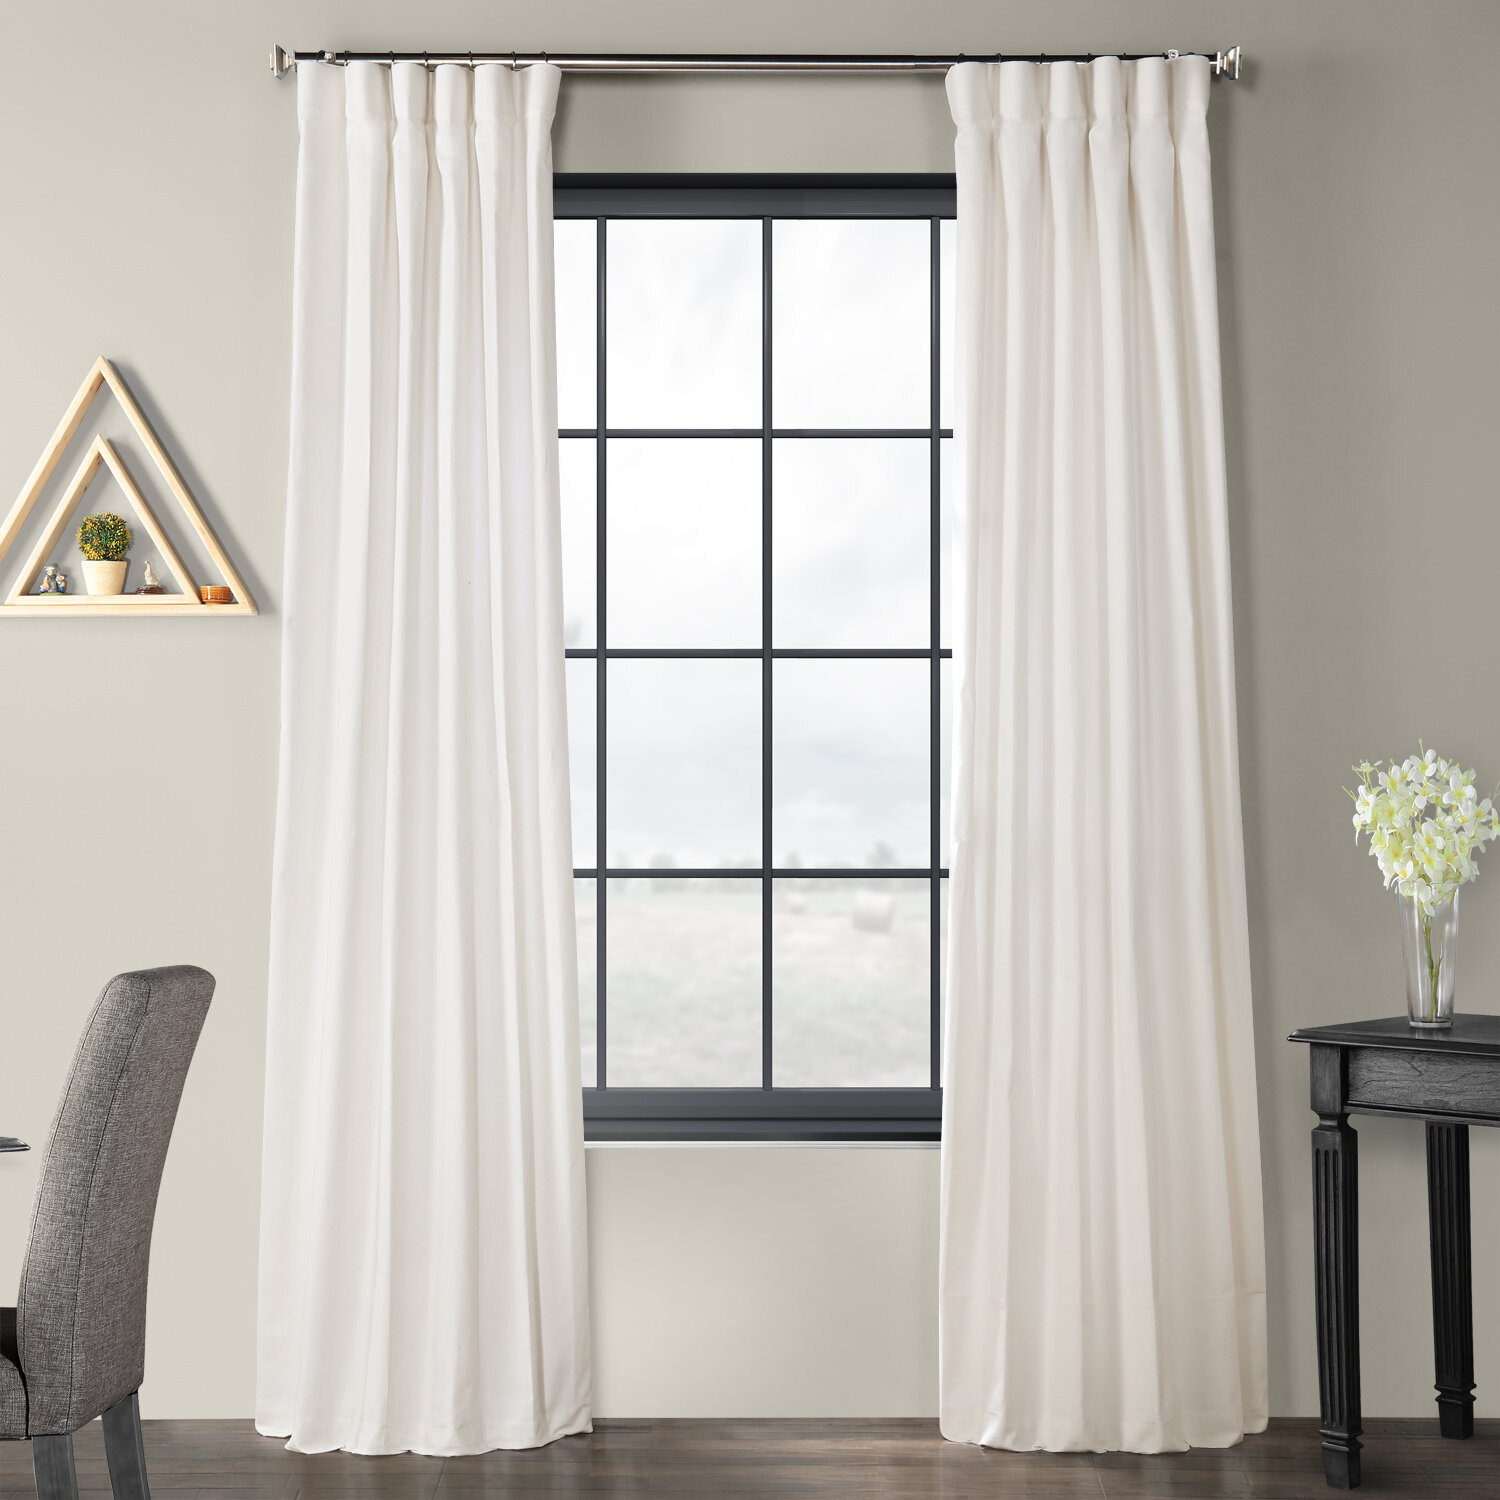 Sanger Solid Country Cotton Linen Weave Rod Pocket Single Curtain Panel Throughout Bark Weave Solid Cotton Curtains (View 19 of 20)